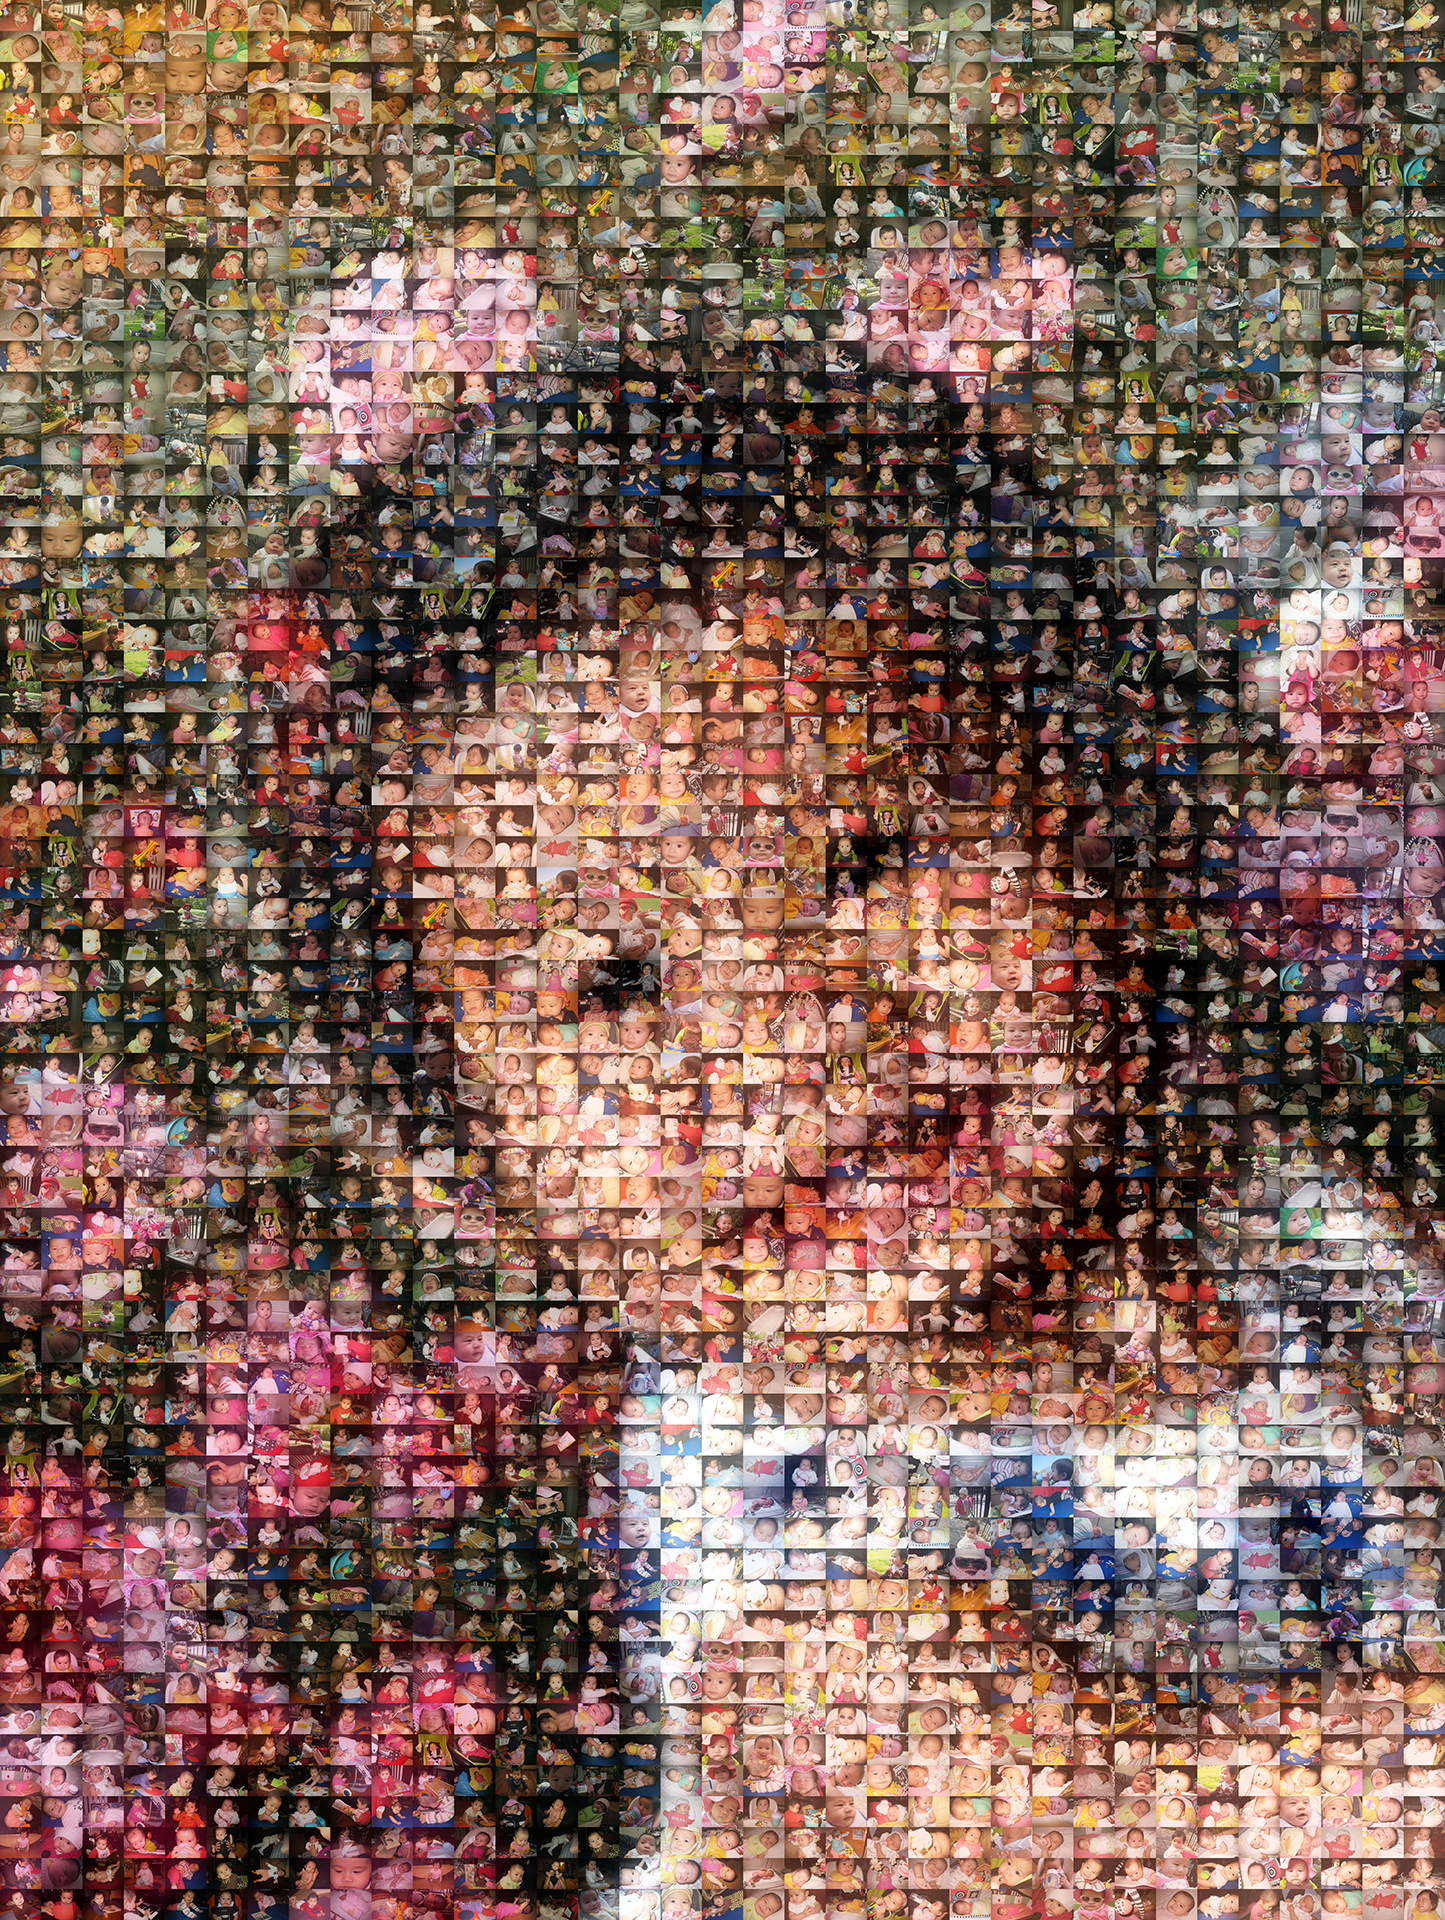 photo mosaic created using 524 baby photos